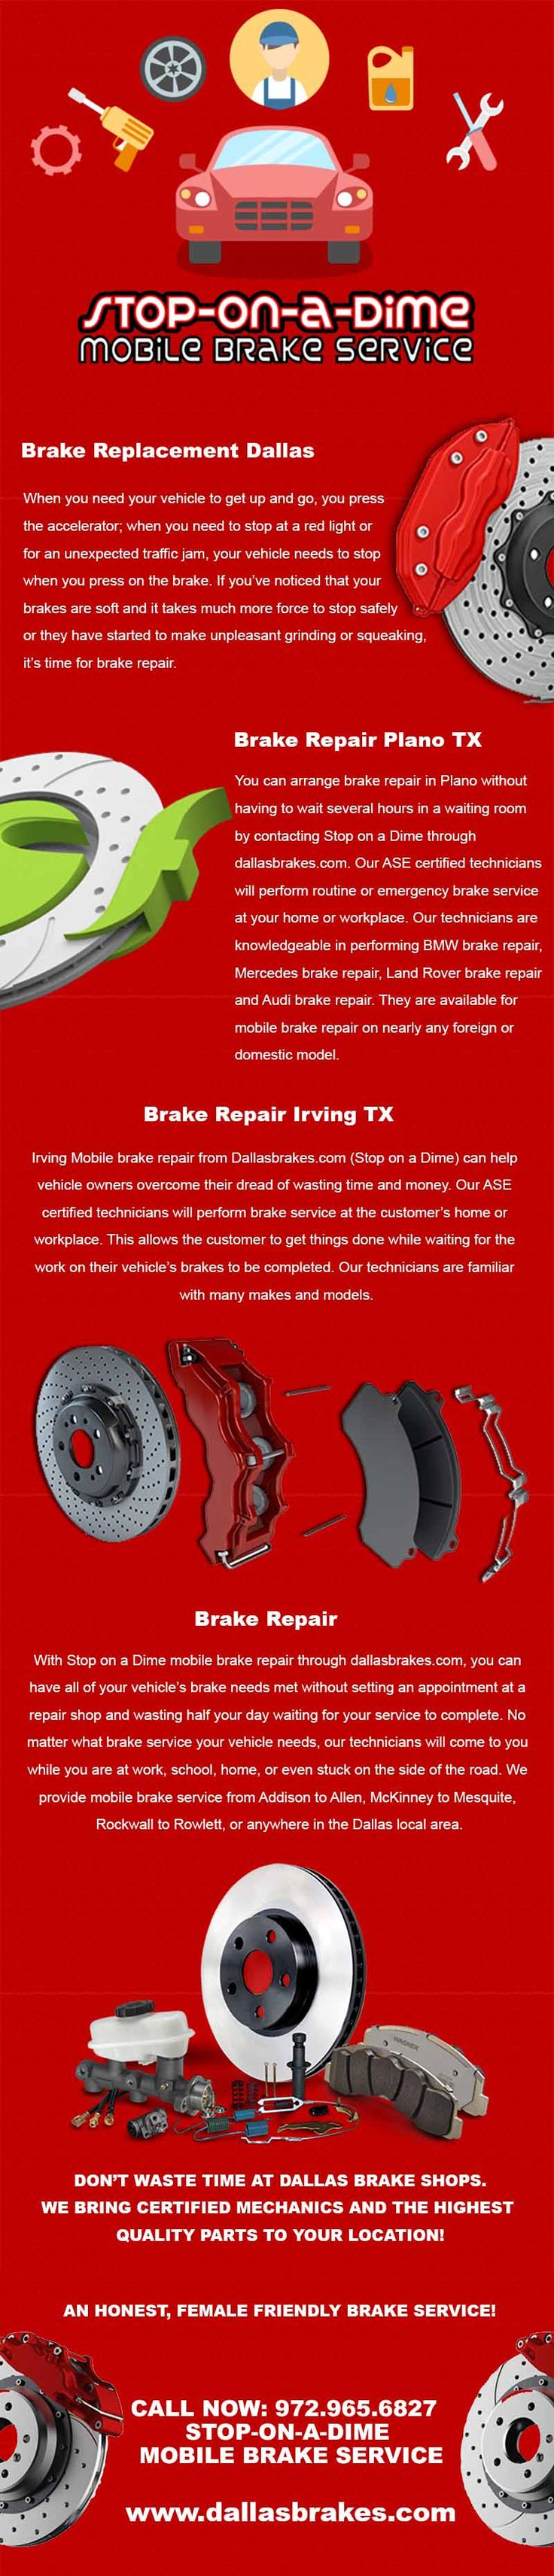 Brake Repair Irving TX -  If the brake of your car is not in proper working condition, instead of taking risk, contact Stop On A Dime Mobile Brake Service for prompt brake repair in a professional way in Irving, TX. We have certified mechanics and use the highest quality parts to complete our work efficiently.